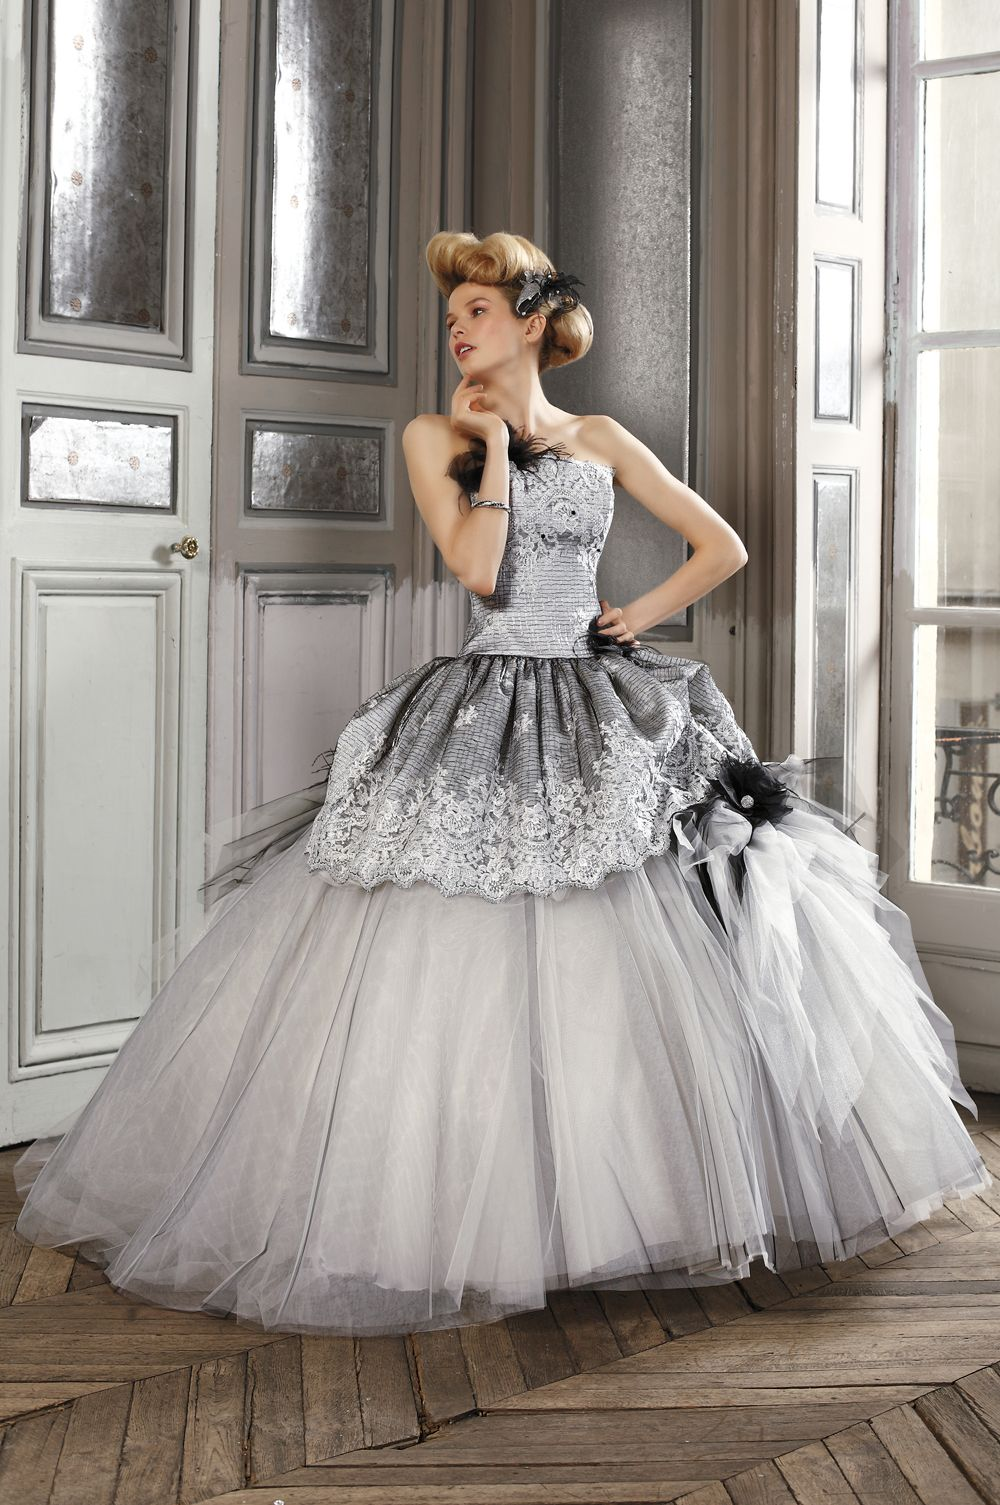 Black and White Wedding Dress With Lace Ruffle. Perfect